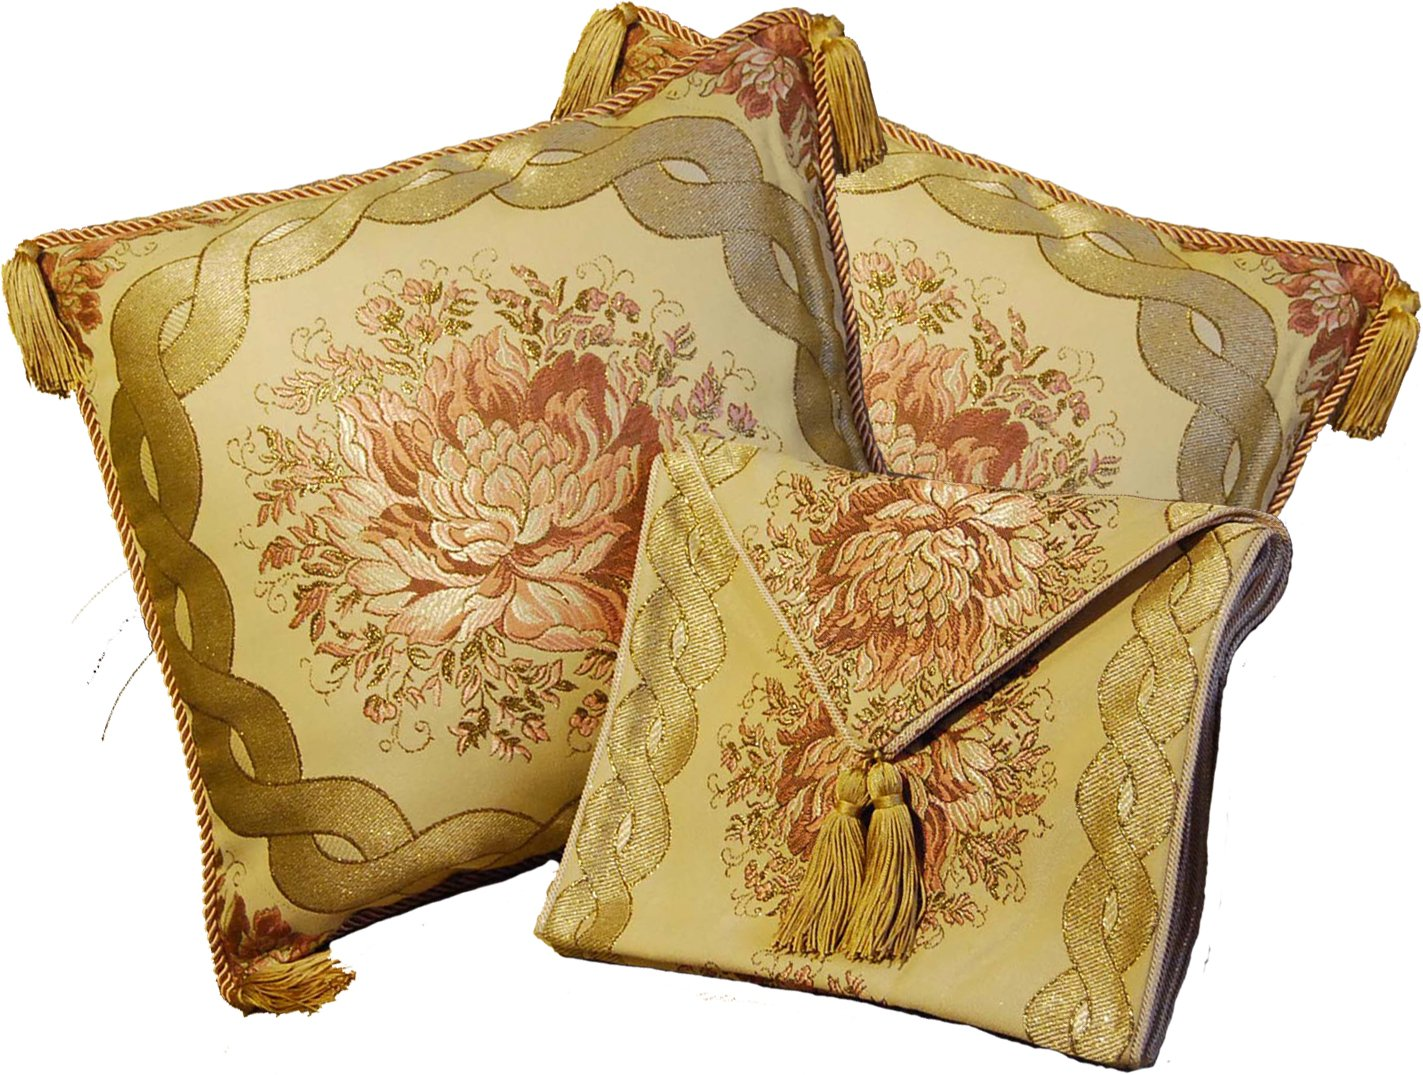 Aubusson Style 2 Cushion/pillow Cover 18'' + Table Runner 60''x12'' Embroidered with Intricate Golden Threads 09A